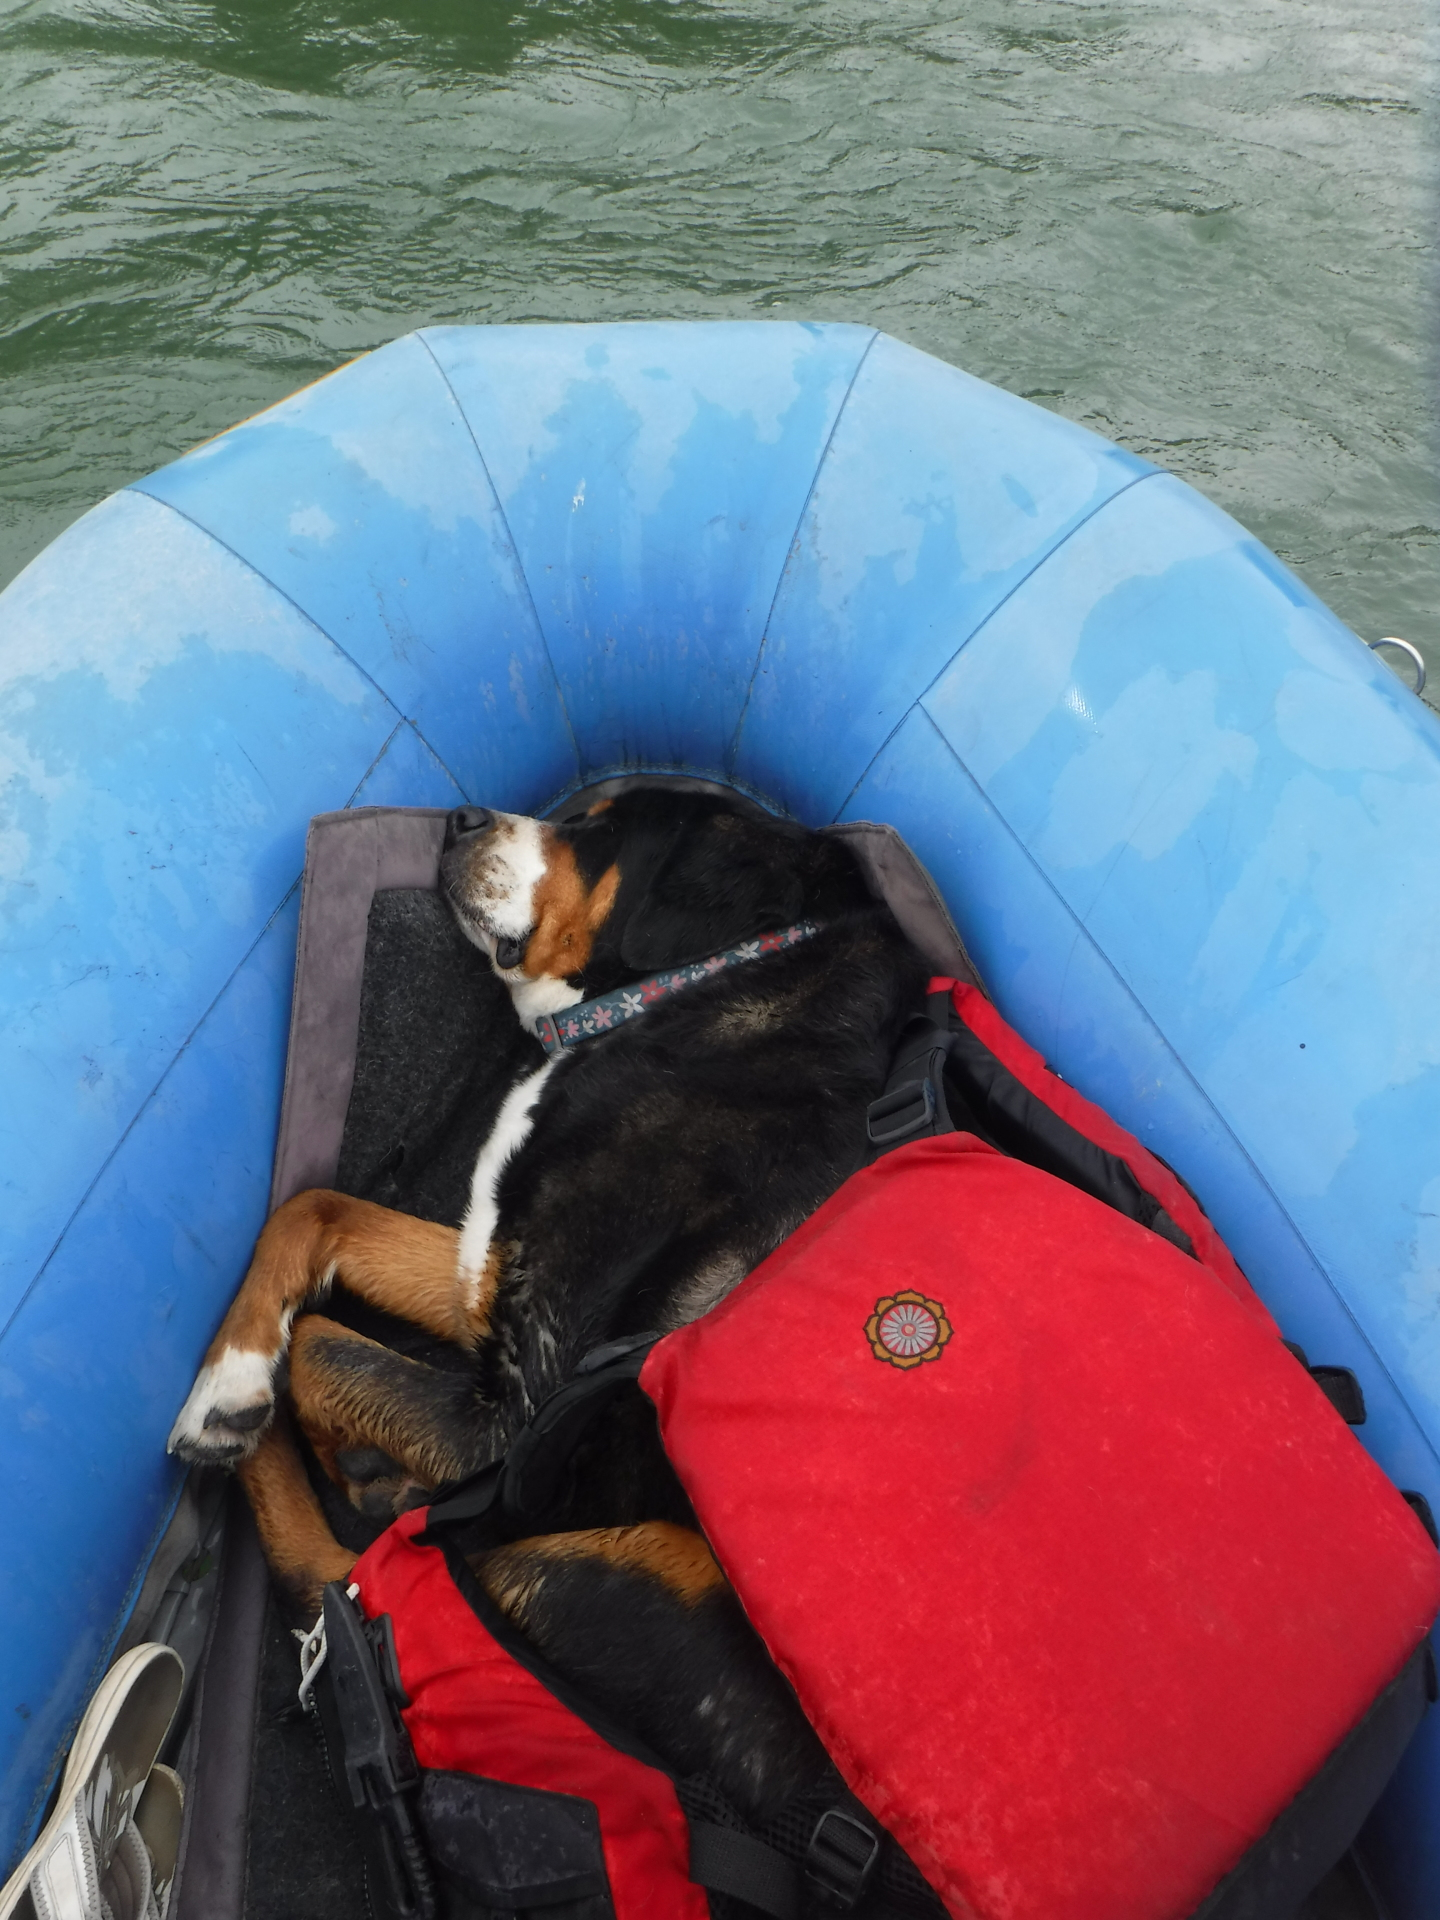 Tuckered out rafting!